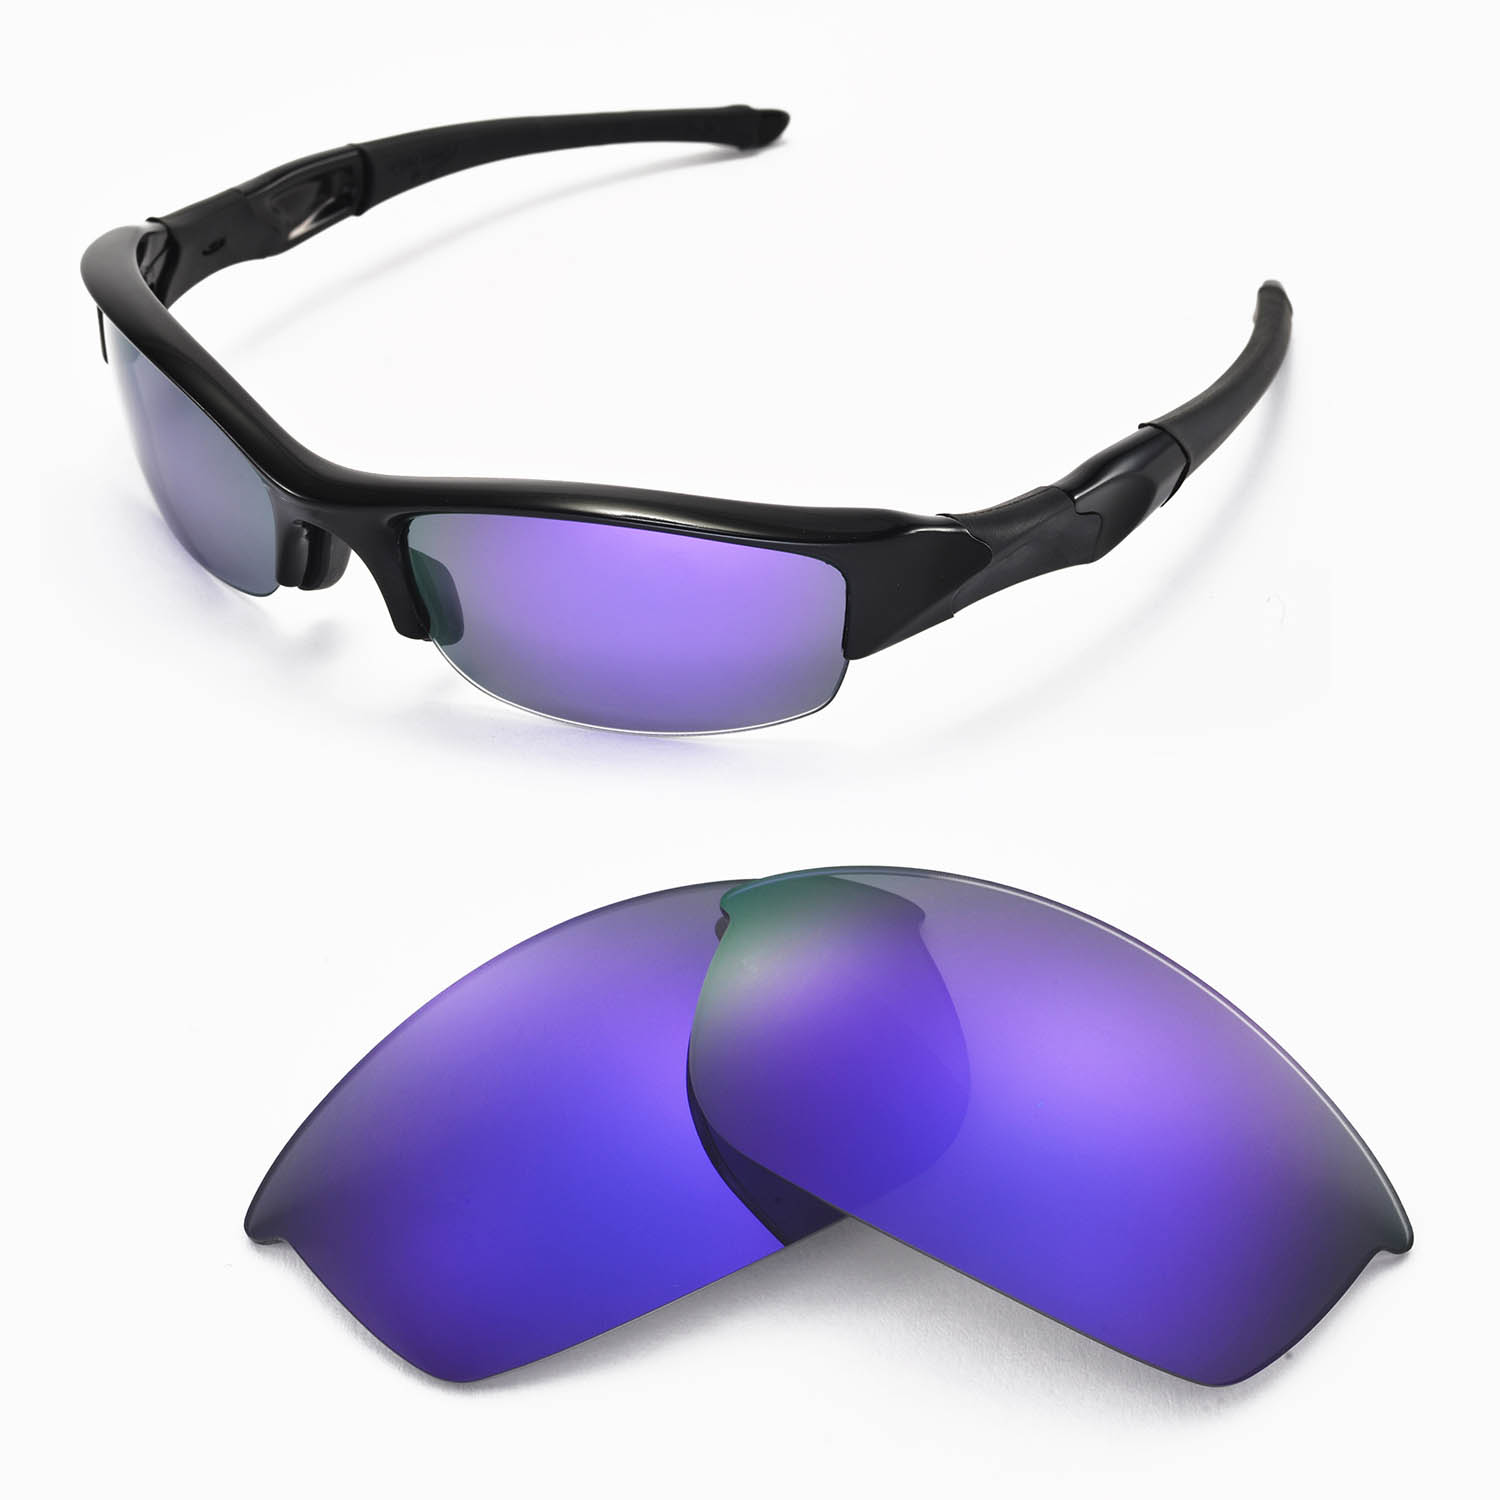 b4522fc9e5 Walleva Replacement Lenses for Oakley Flak Jacket .. in Pakaian ...